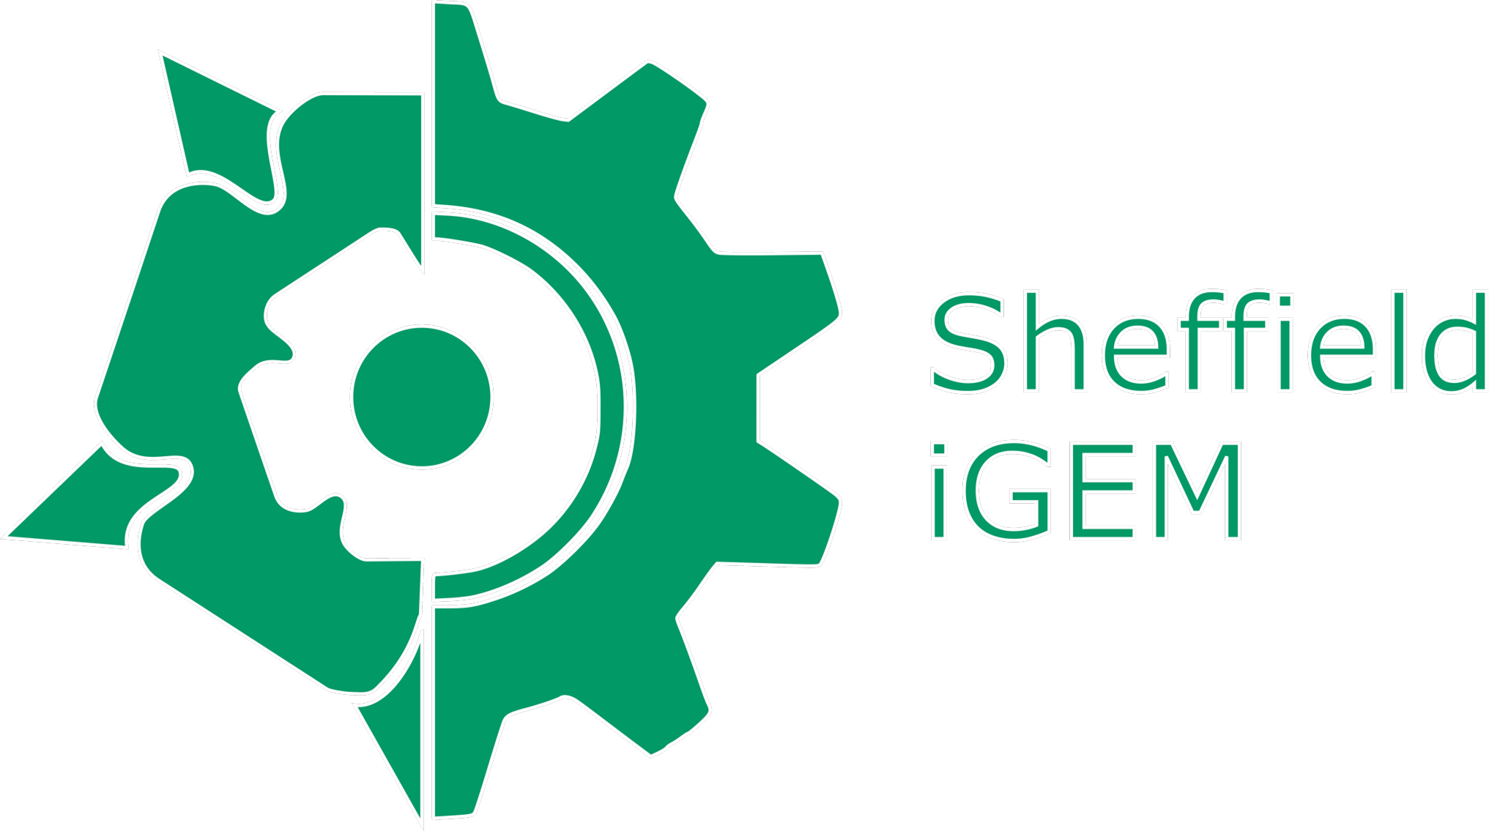 Sheffield iGEM